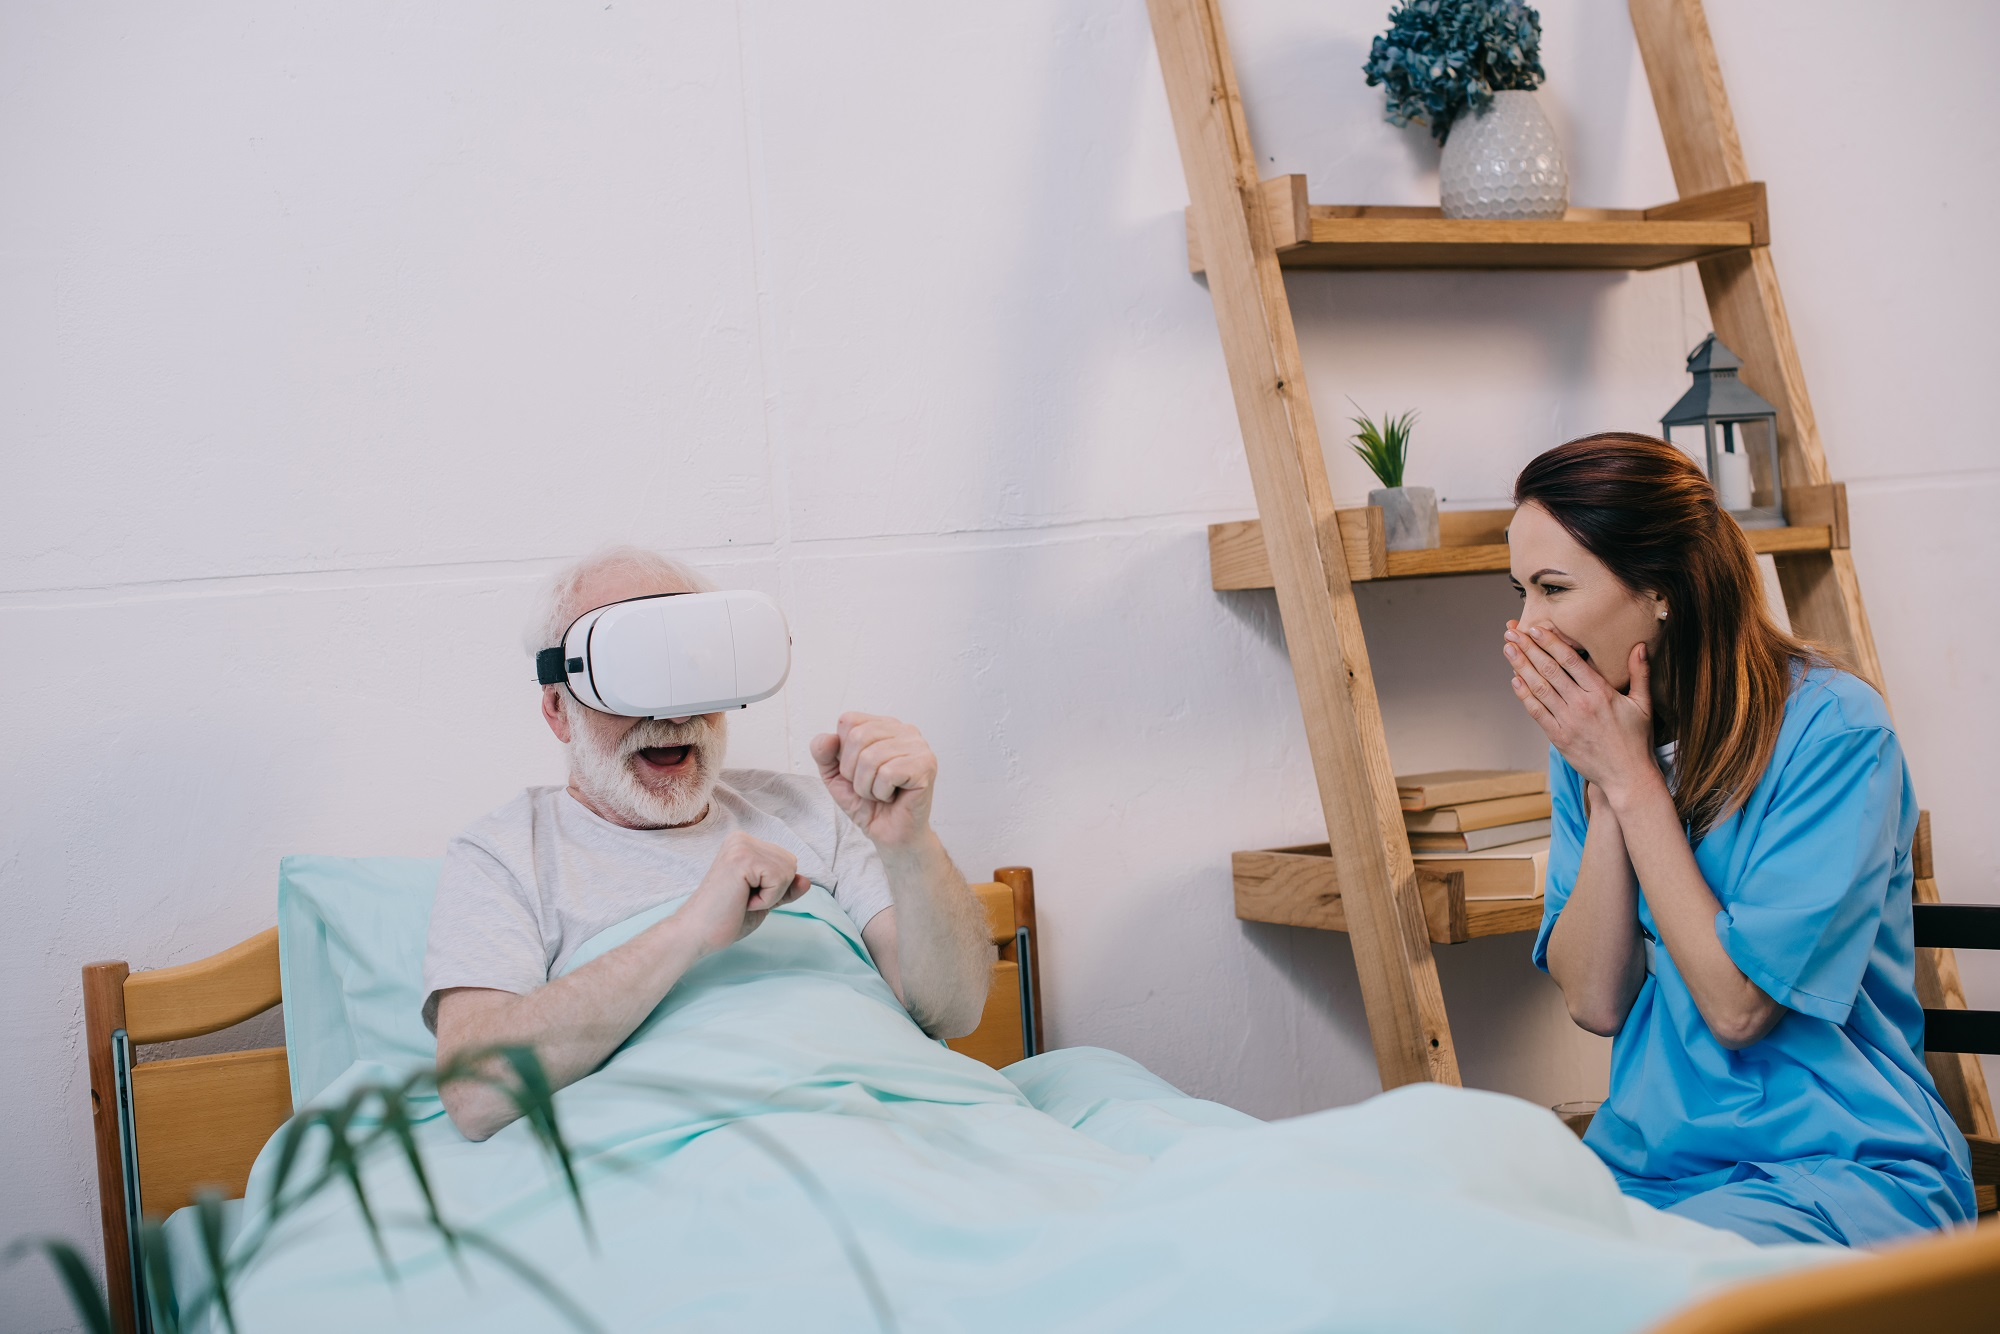 How Virtual Reality Can Be Used For Palliation, Allaying Anxiety, and Distraction Away from Pain